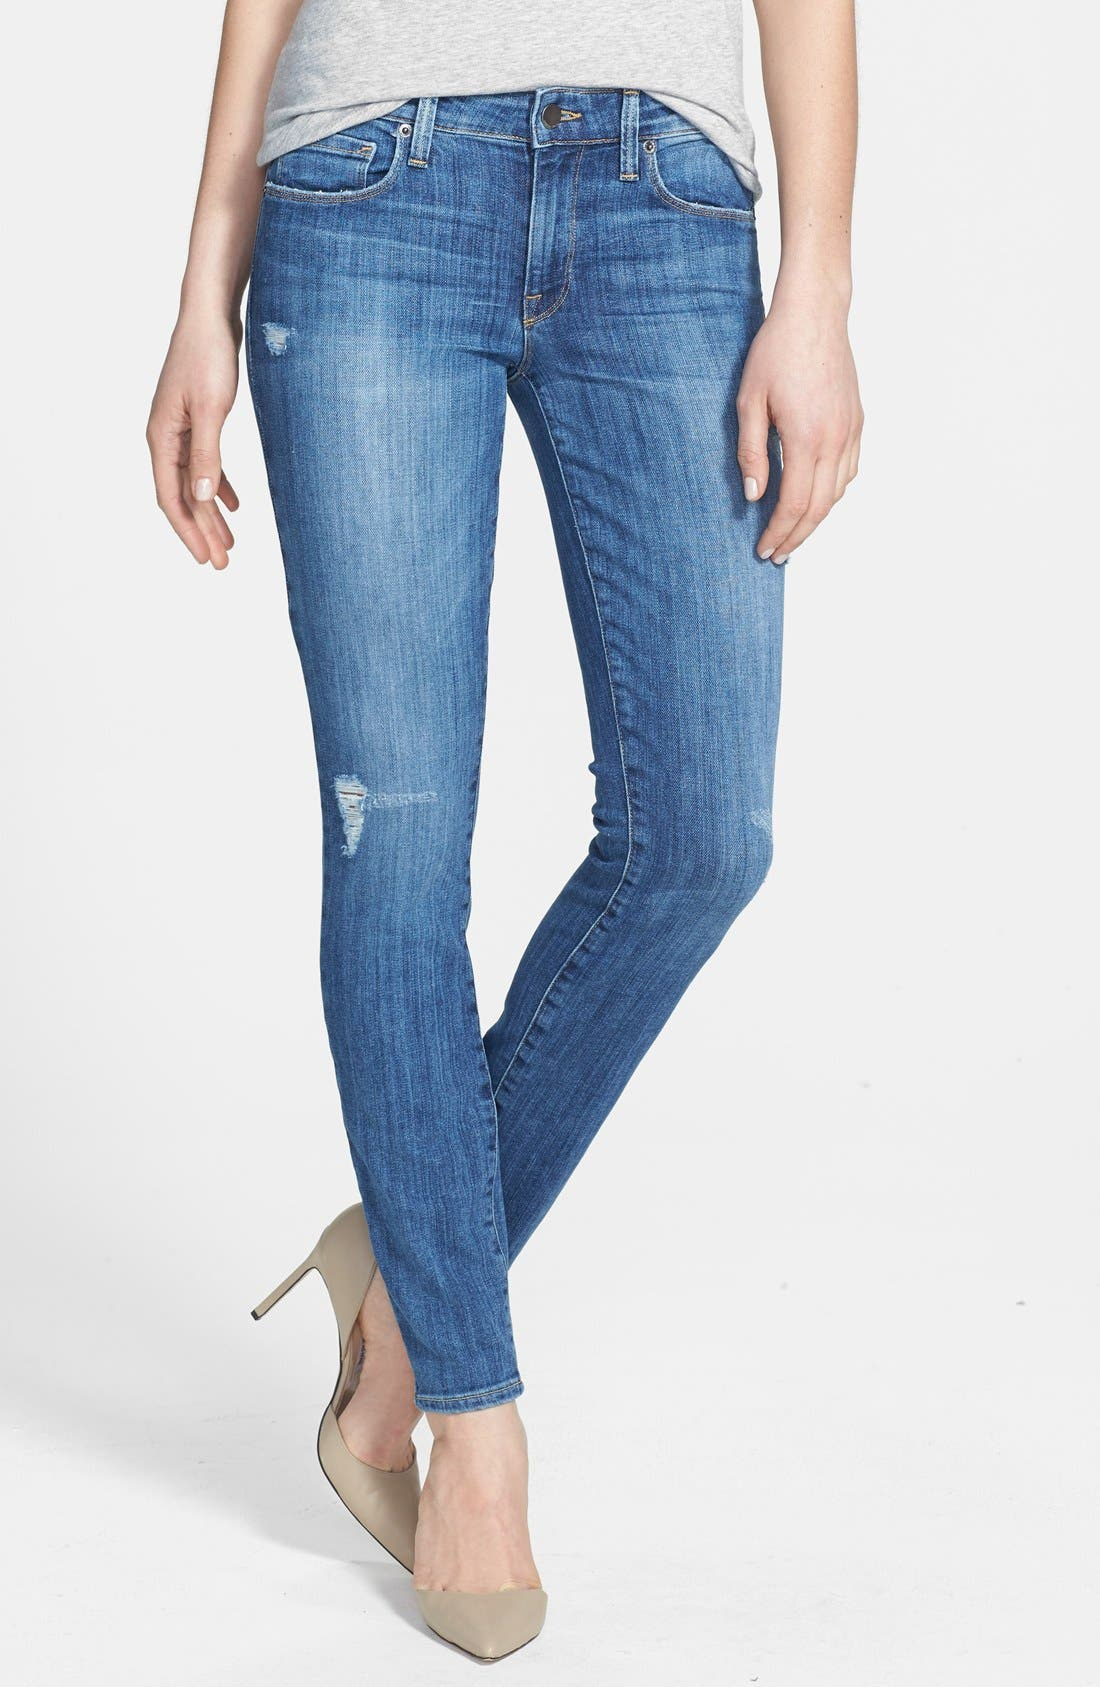 Alternate Image 1 Selected - Genetic 'Stem' Mid Rise Skinny Jeans (Slash)